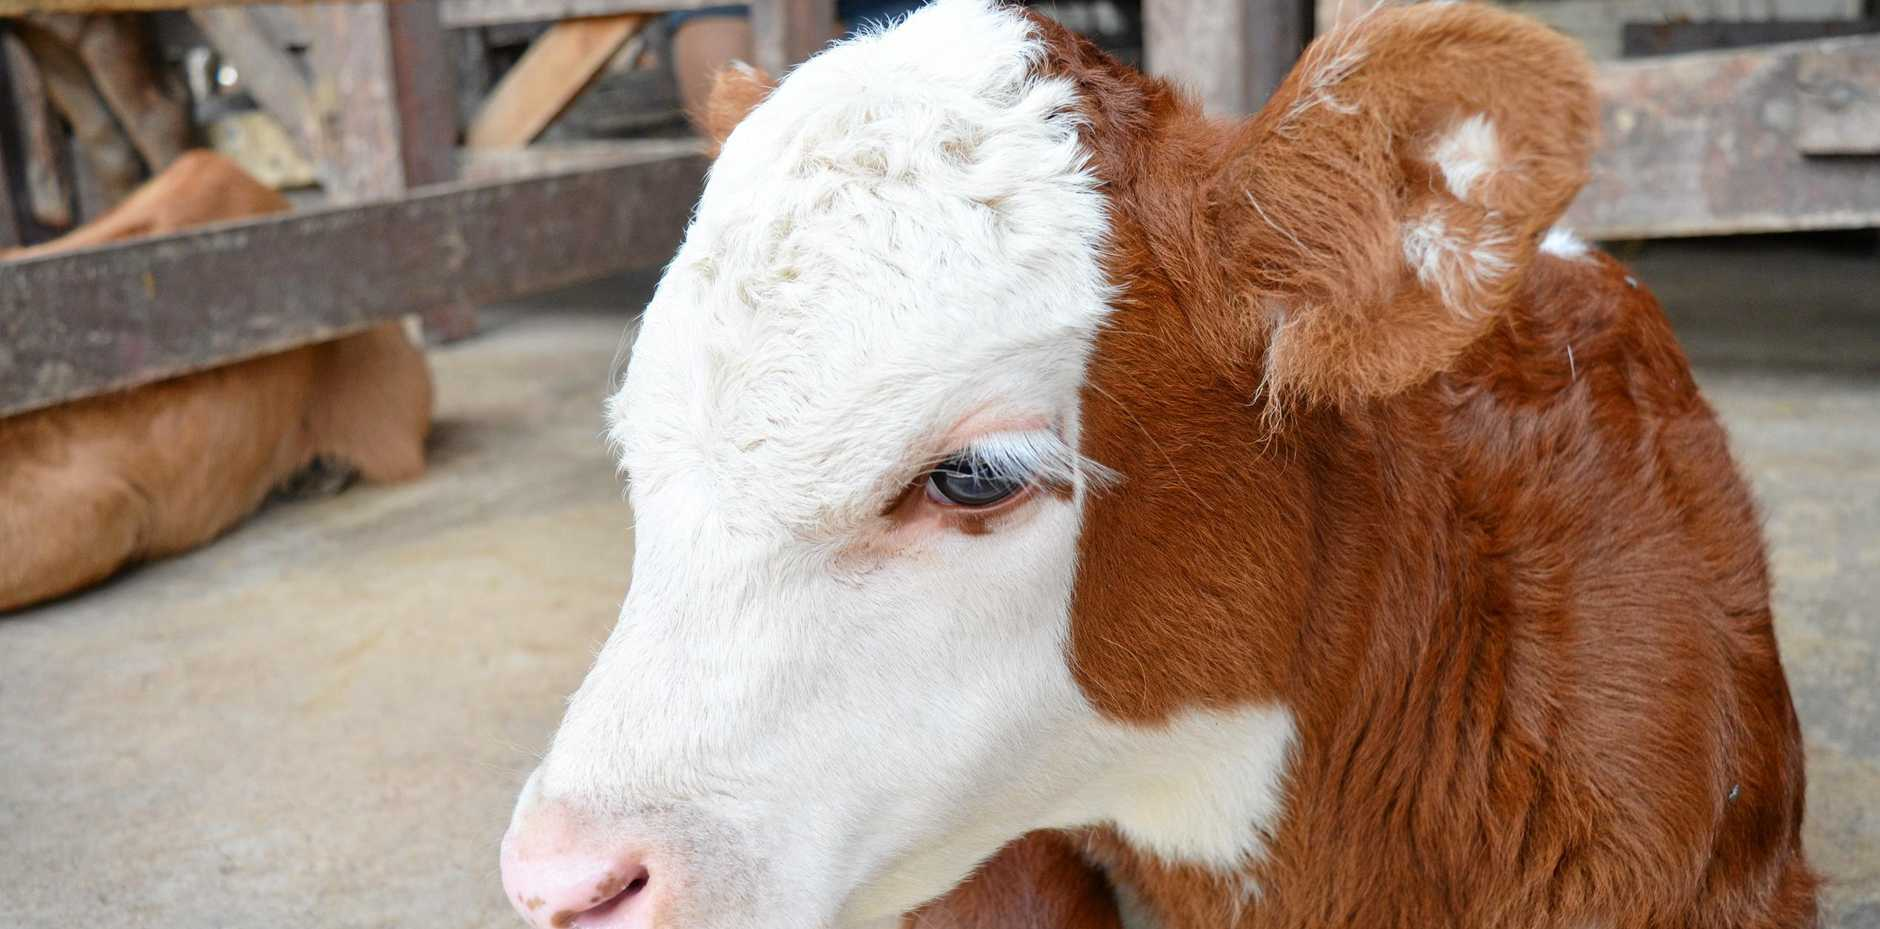 TOUGH TIMES: Cattle prices took a hit last winter.